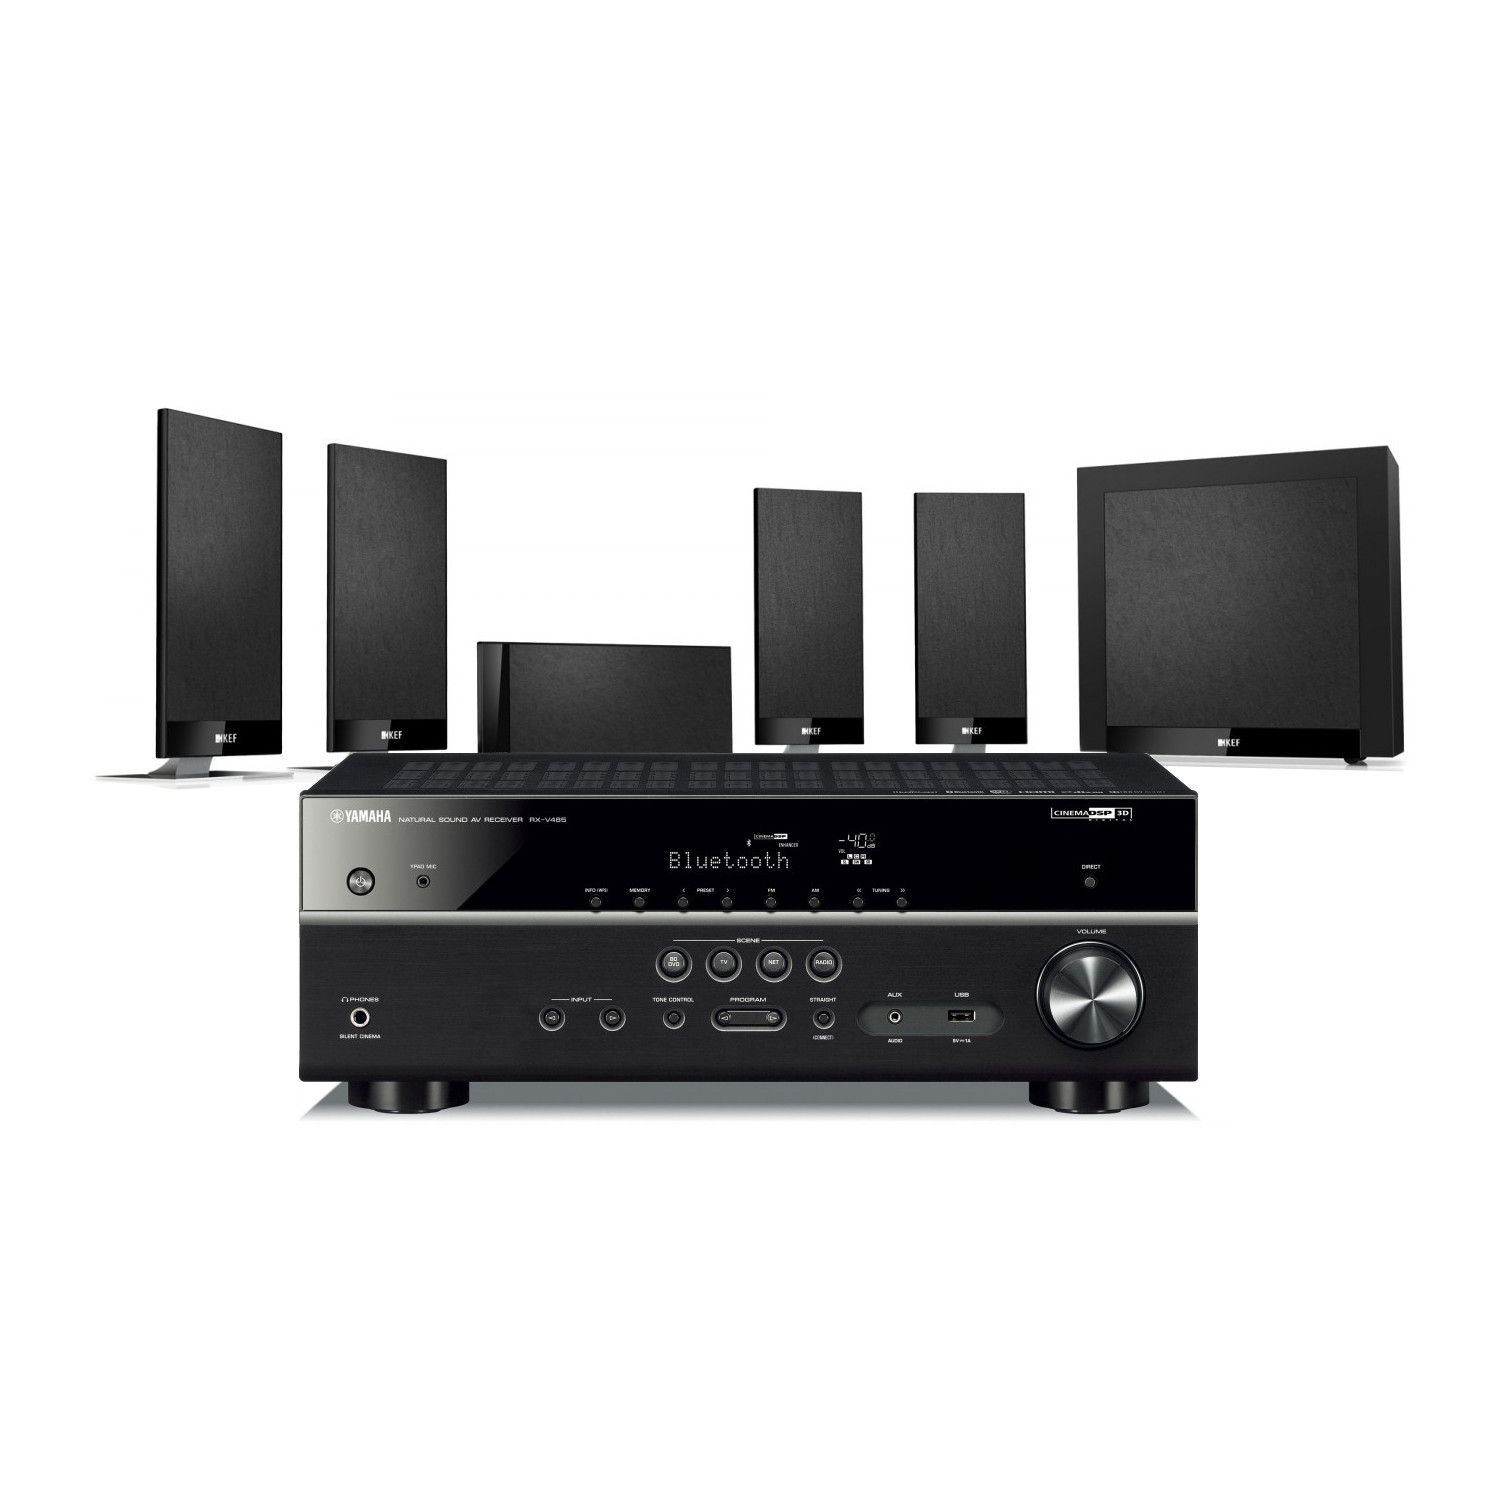 yamaha rx v485 av receiver with kef t105 av speakers. Black Bedroom Furniture Sets. Home Design Ideas